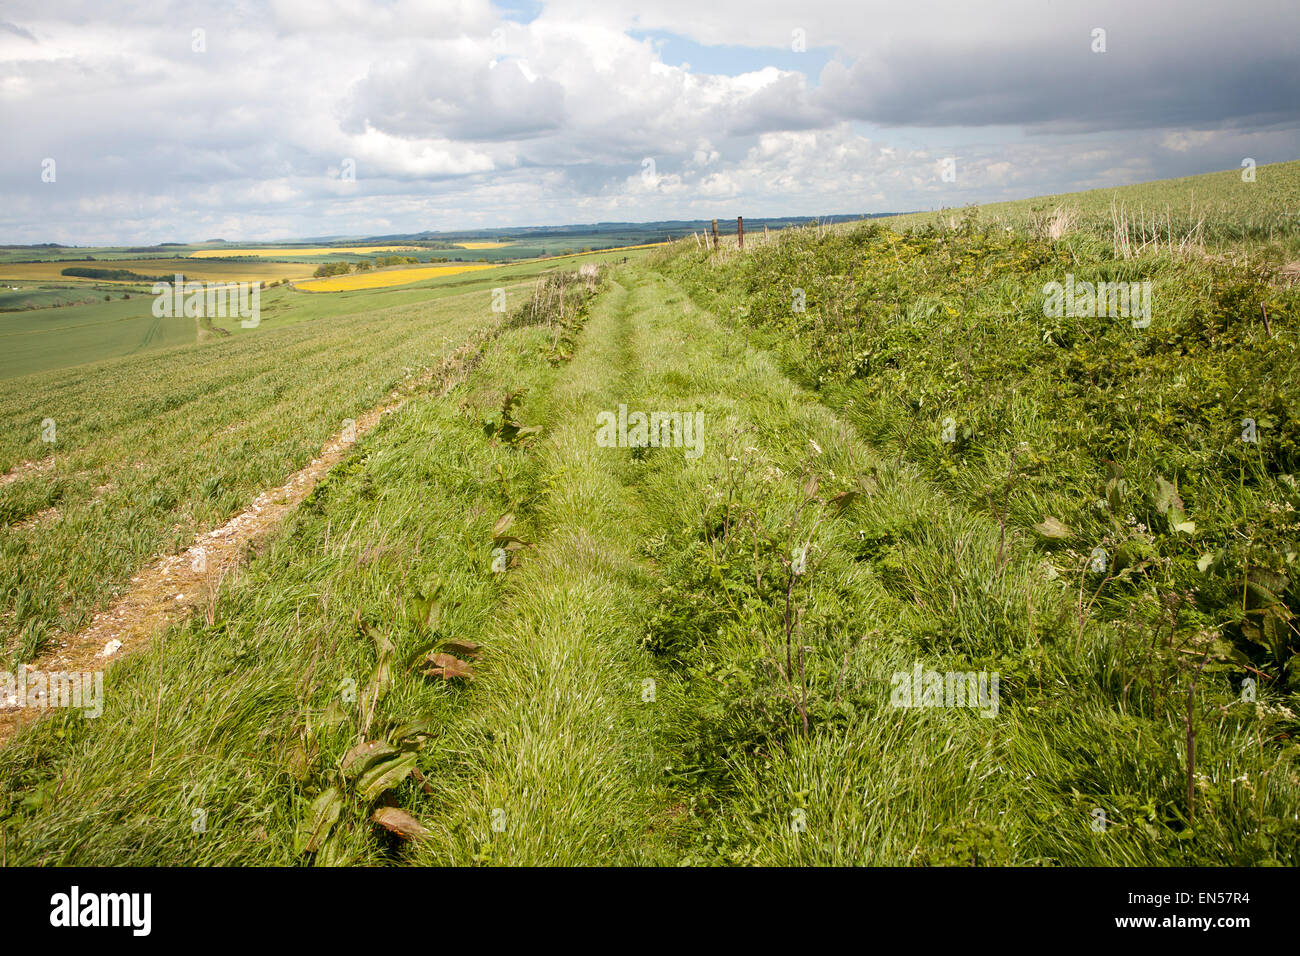 Grass track crossing chalk landscape of the Marlborough Downs, near East Kennet, Wiltshire, England, UK - Stock Image